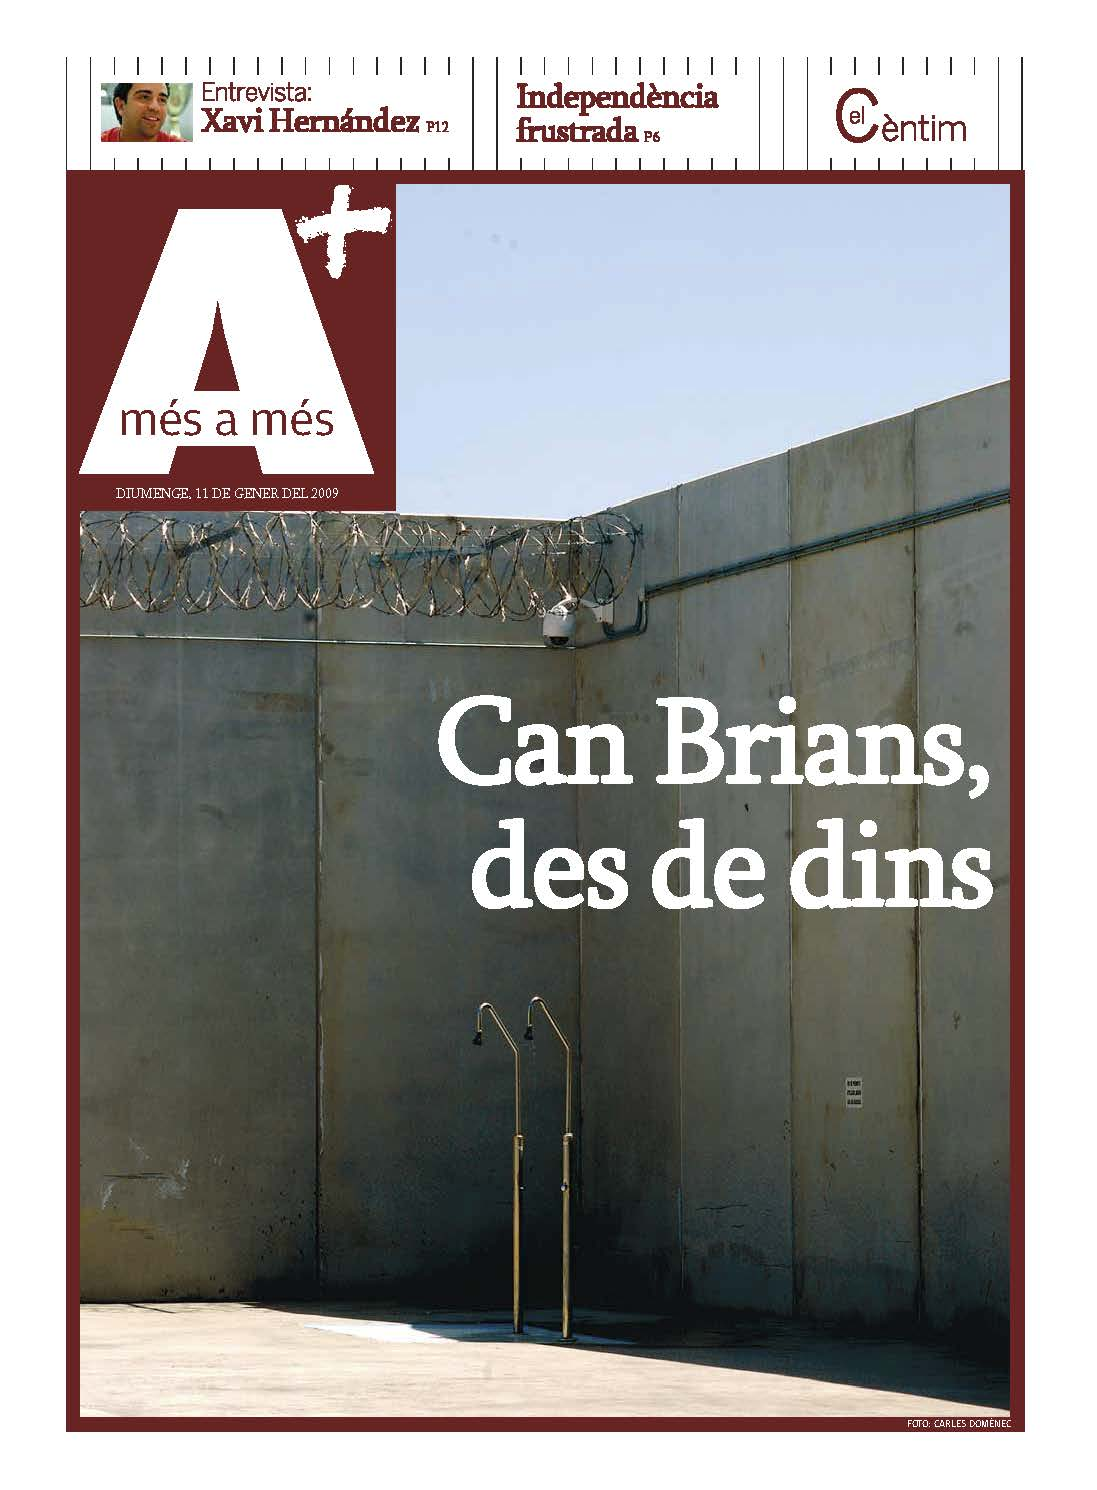 In the prison of Can Brians